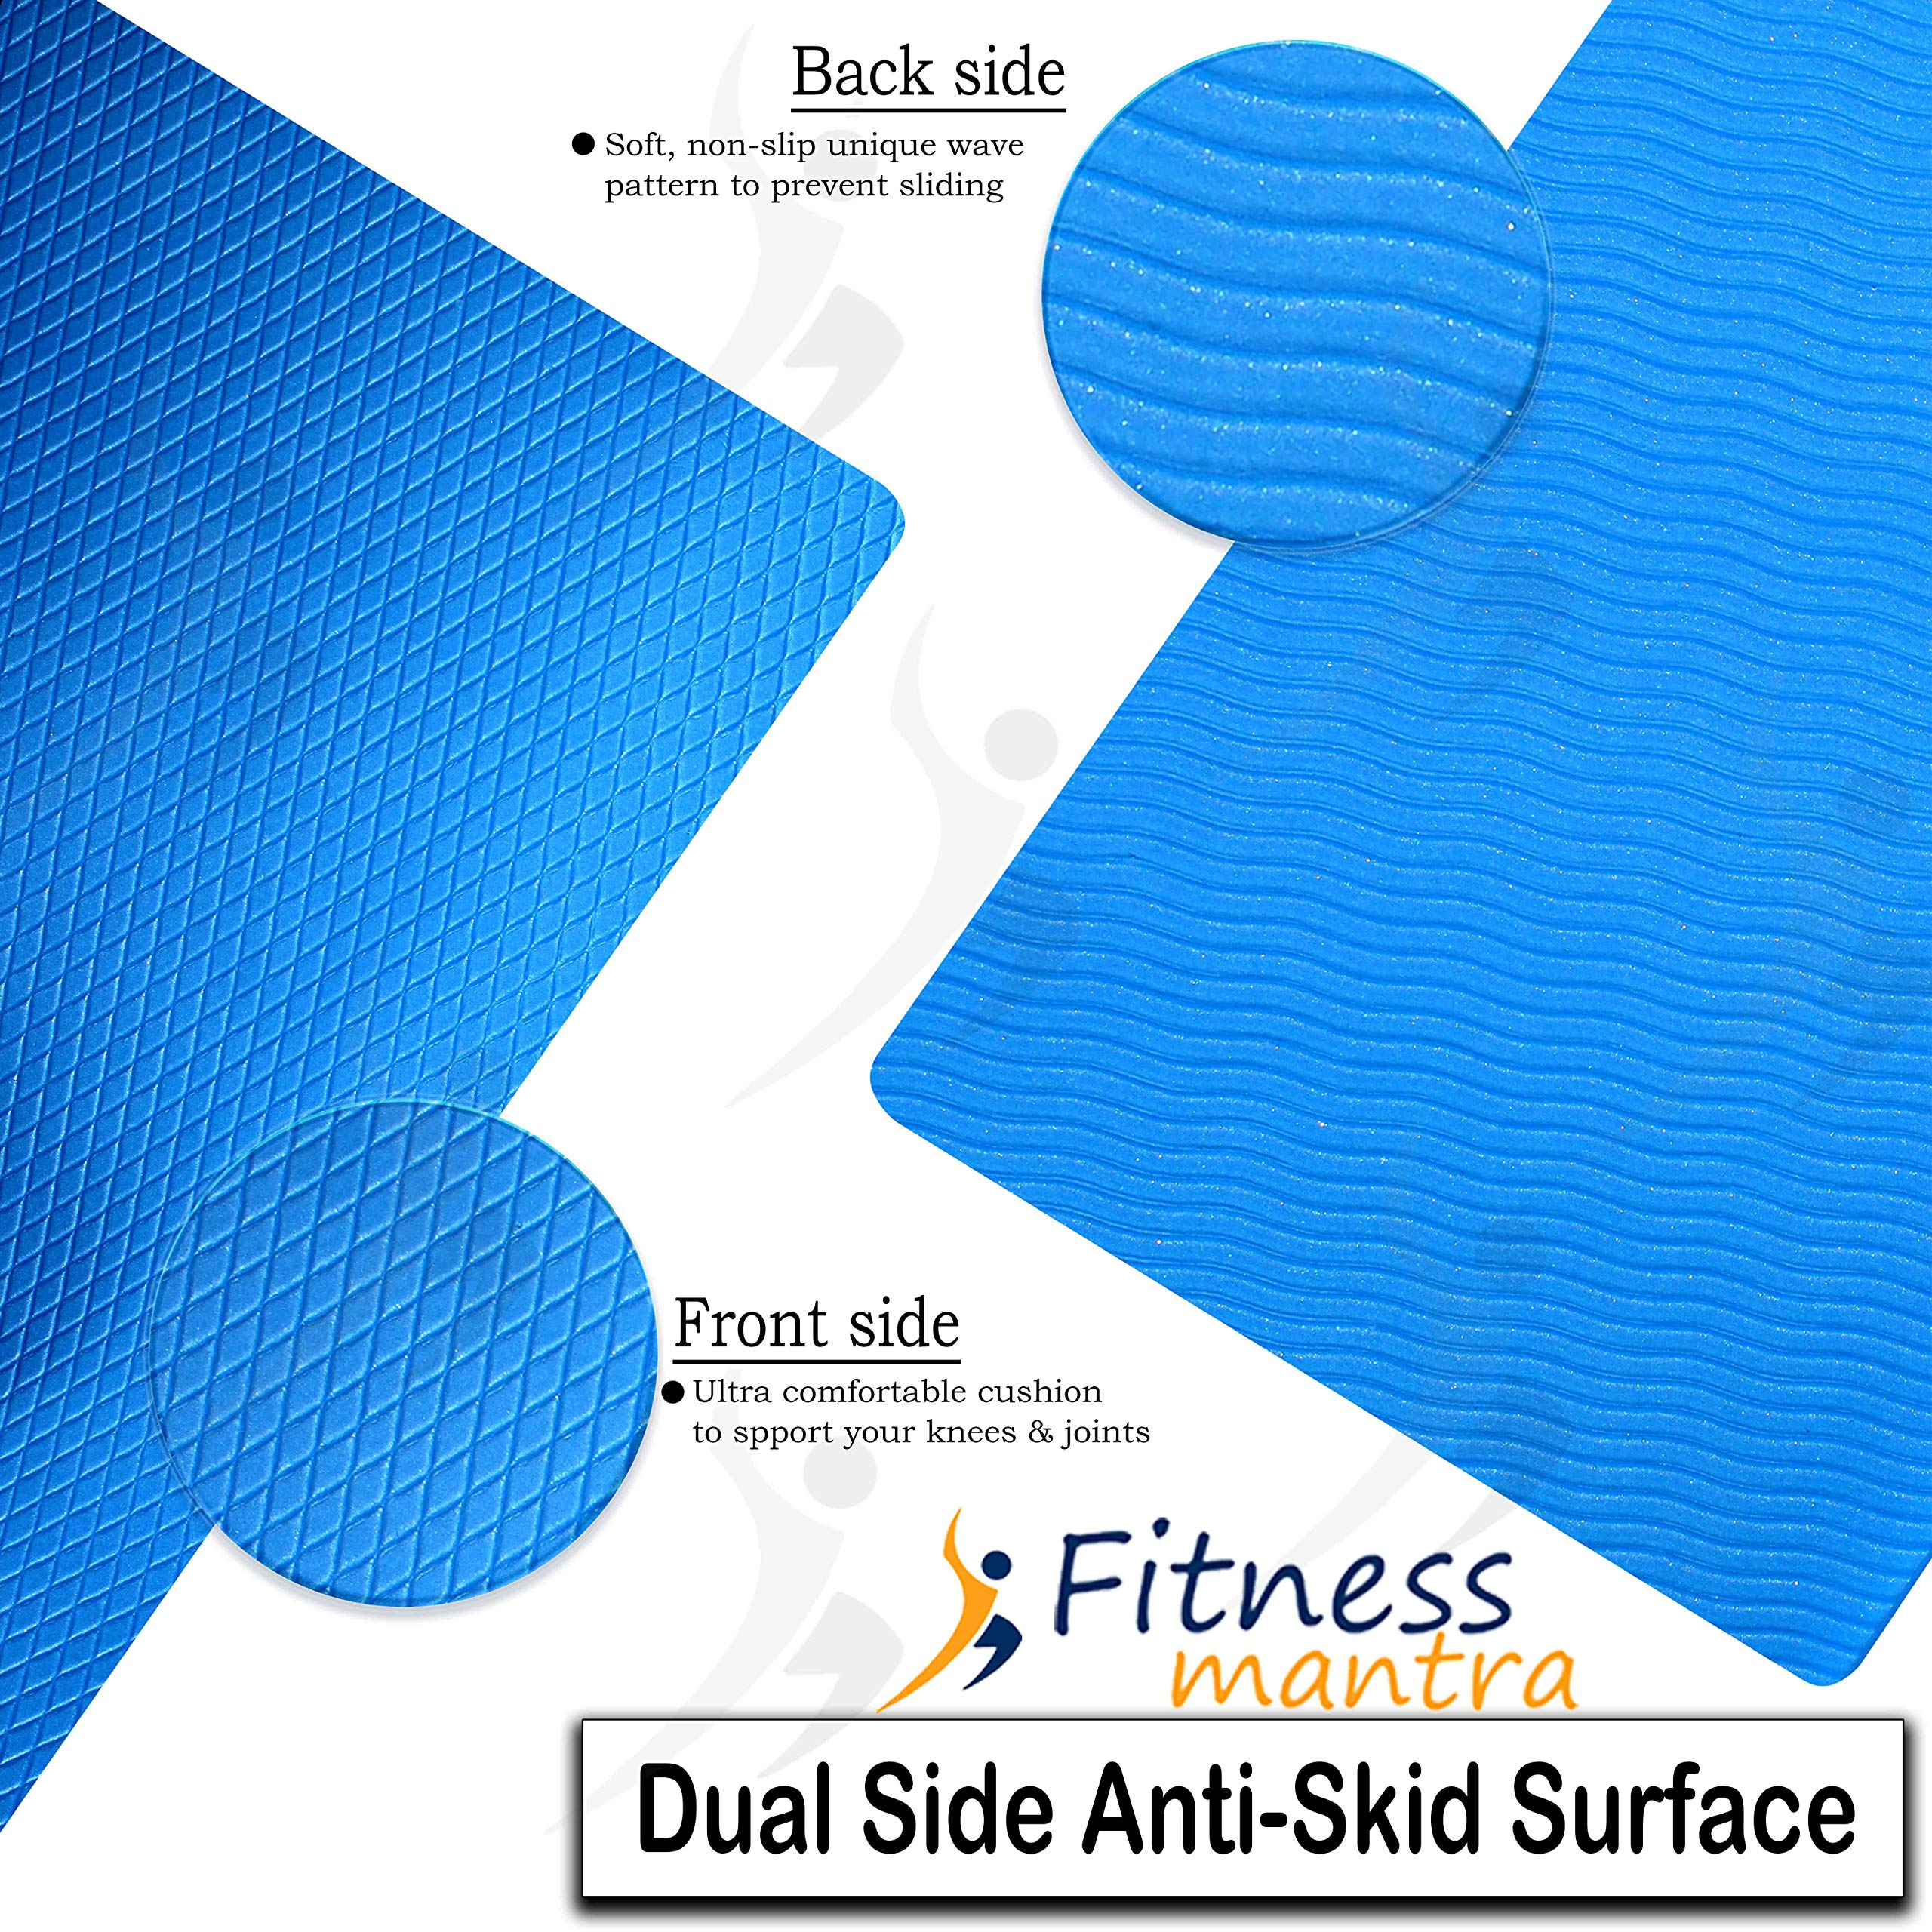 Fitness Mantra® Yoga Mat for Gym Workout and Yoga Exercise with 6mm Thickness, Anti-Slip Yoga Mat for Men & Women Fitness (Qnty.-1 Pcs.)